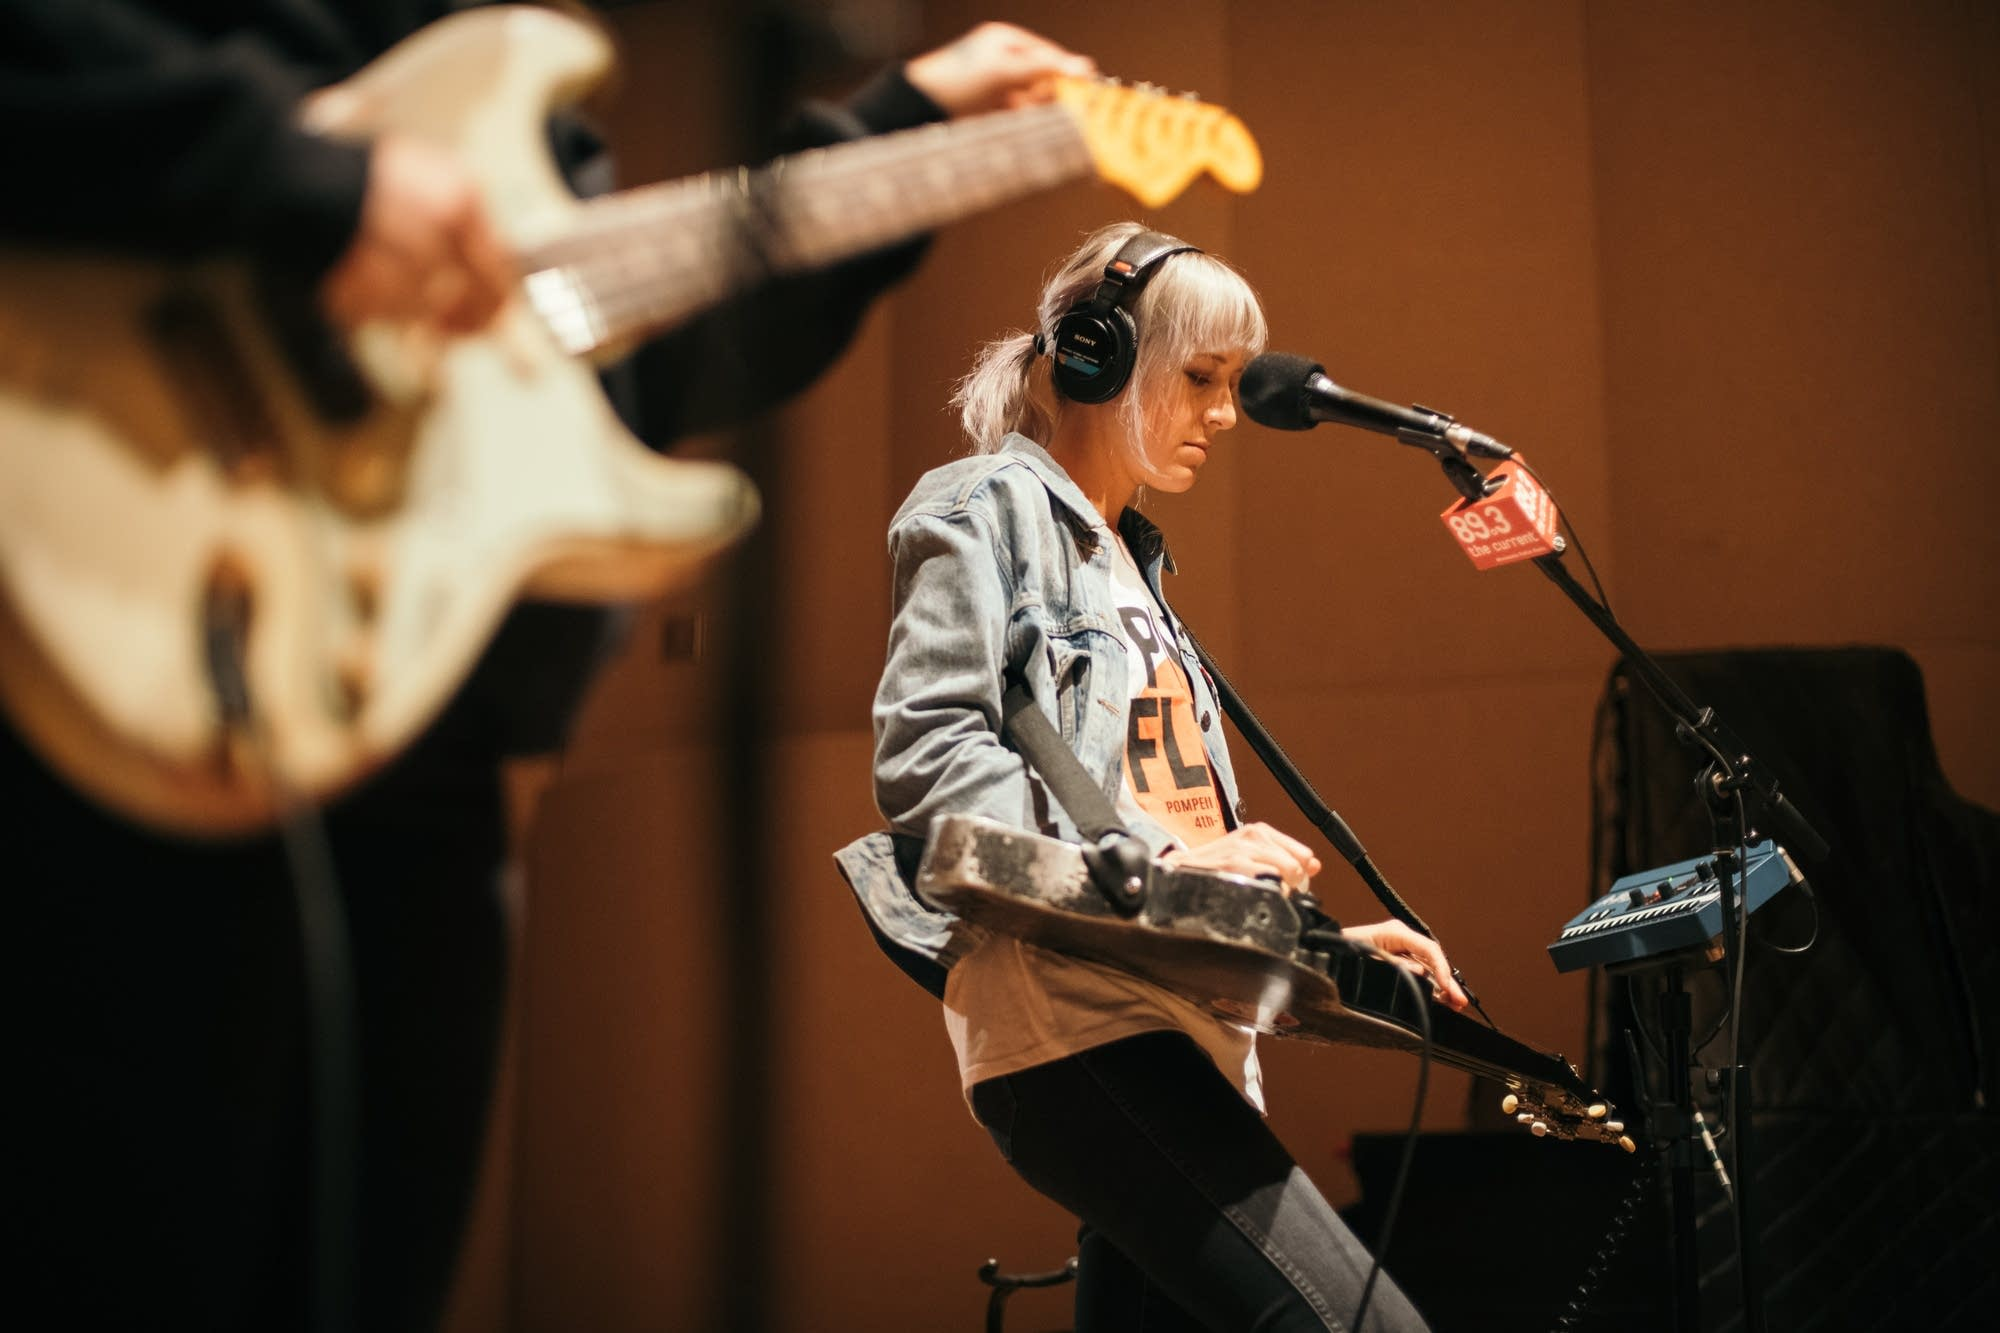 Larkin Poe perform in The Current studio